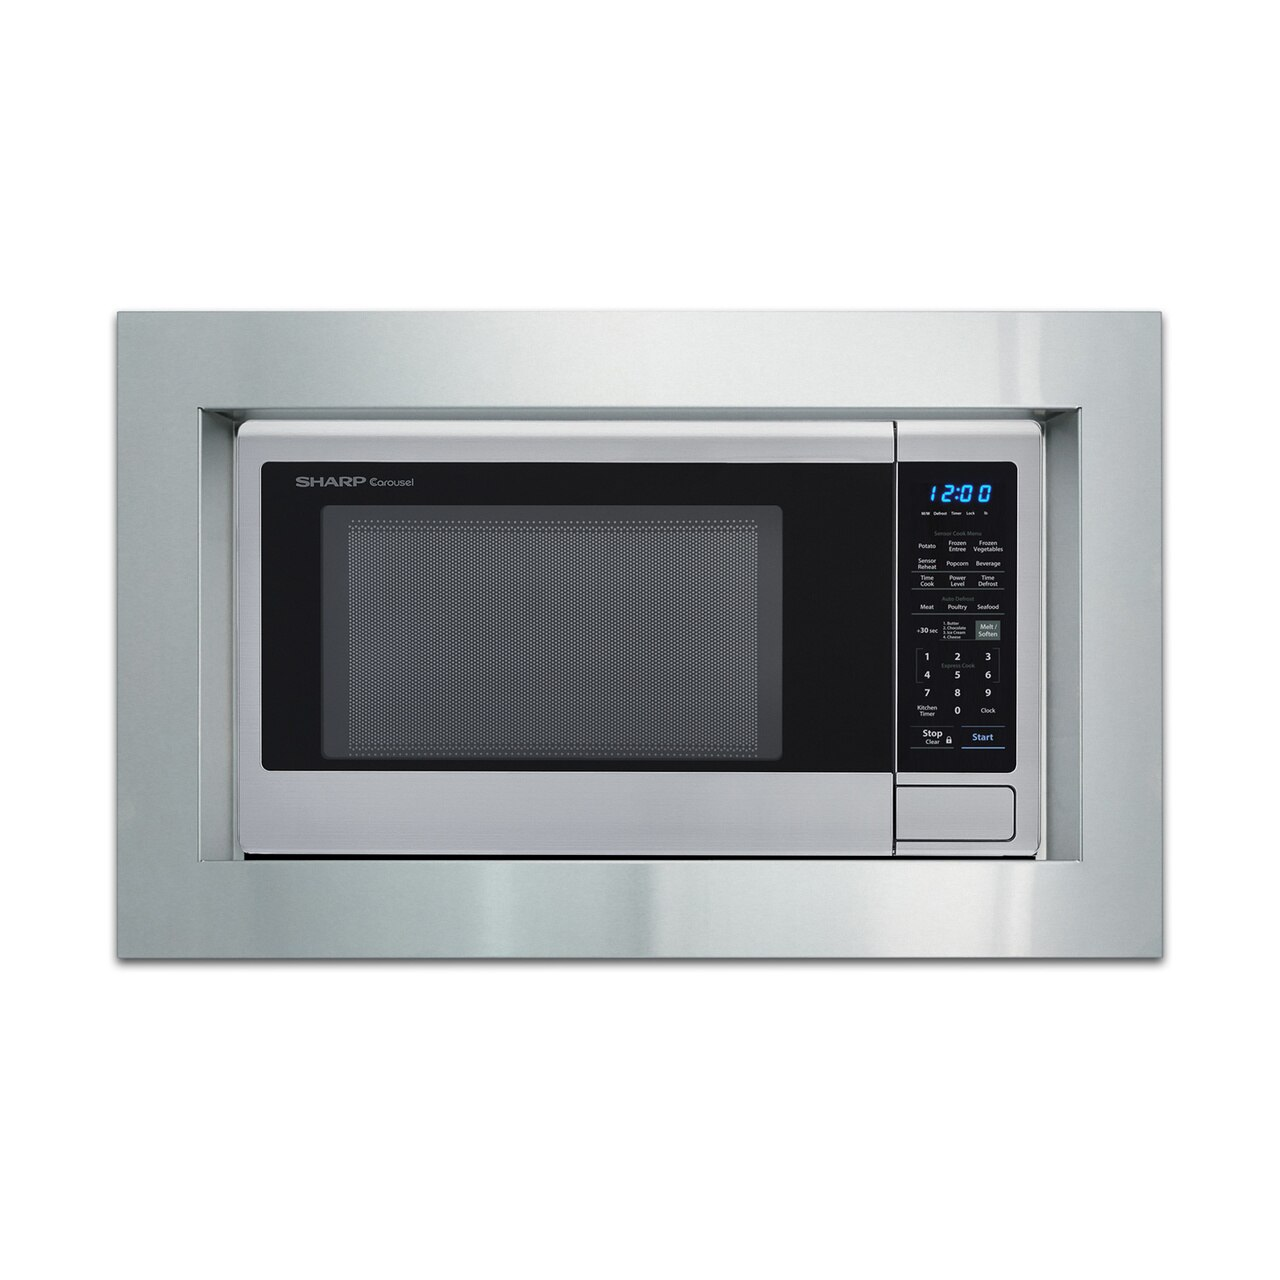 "Sharp 30"" Built-in Trim Kit (RK49S30) on SMC1842CS Microwave.   *Microwave not included"